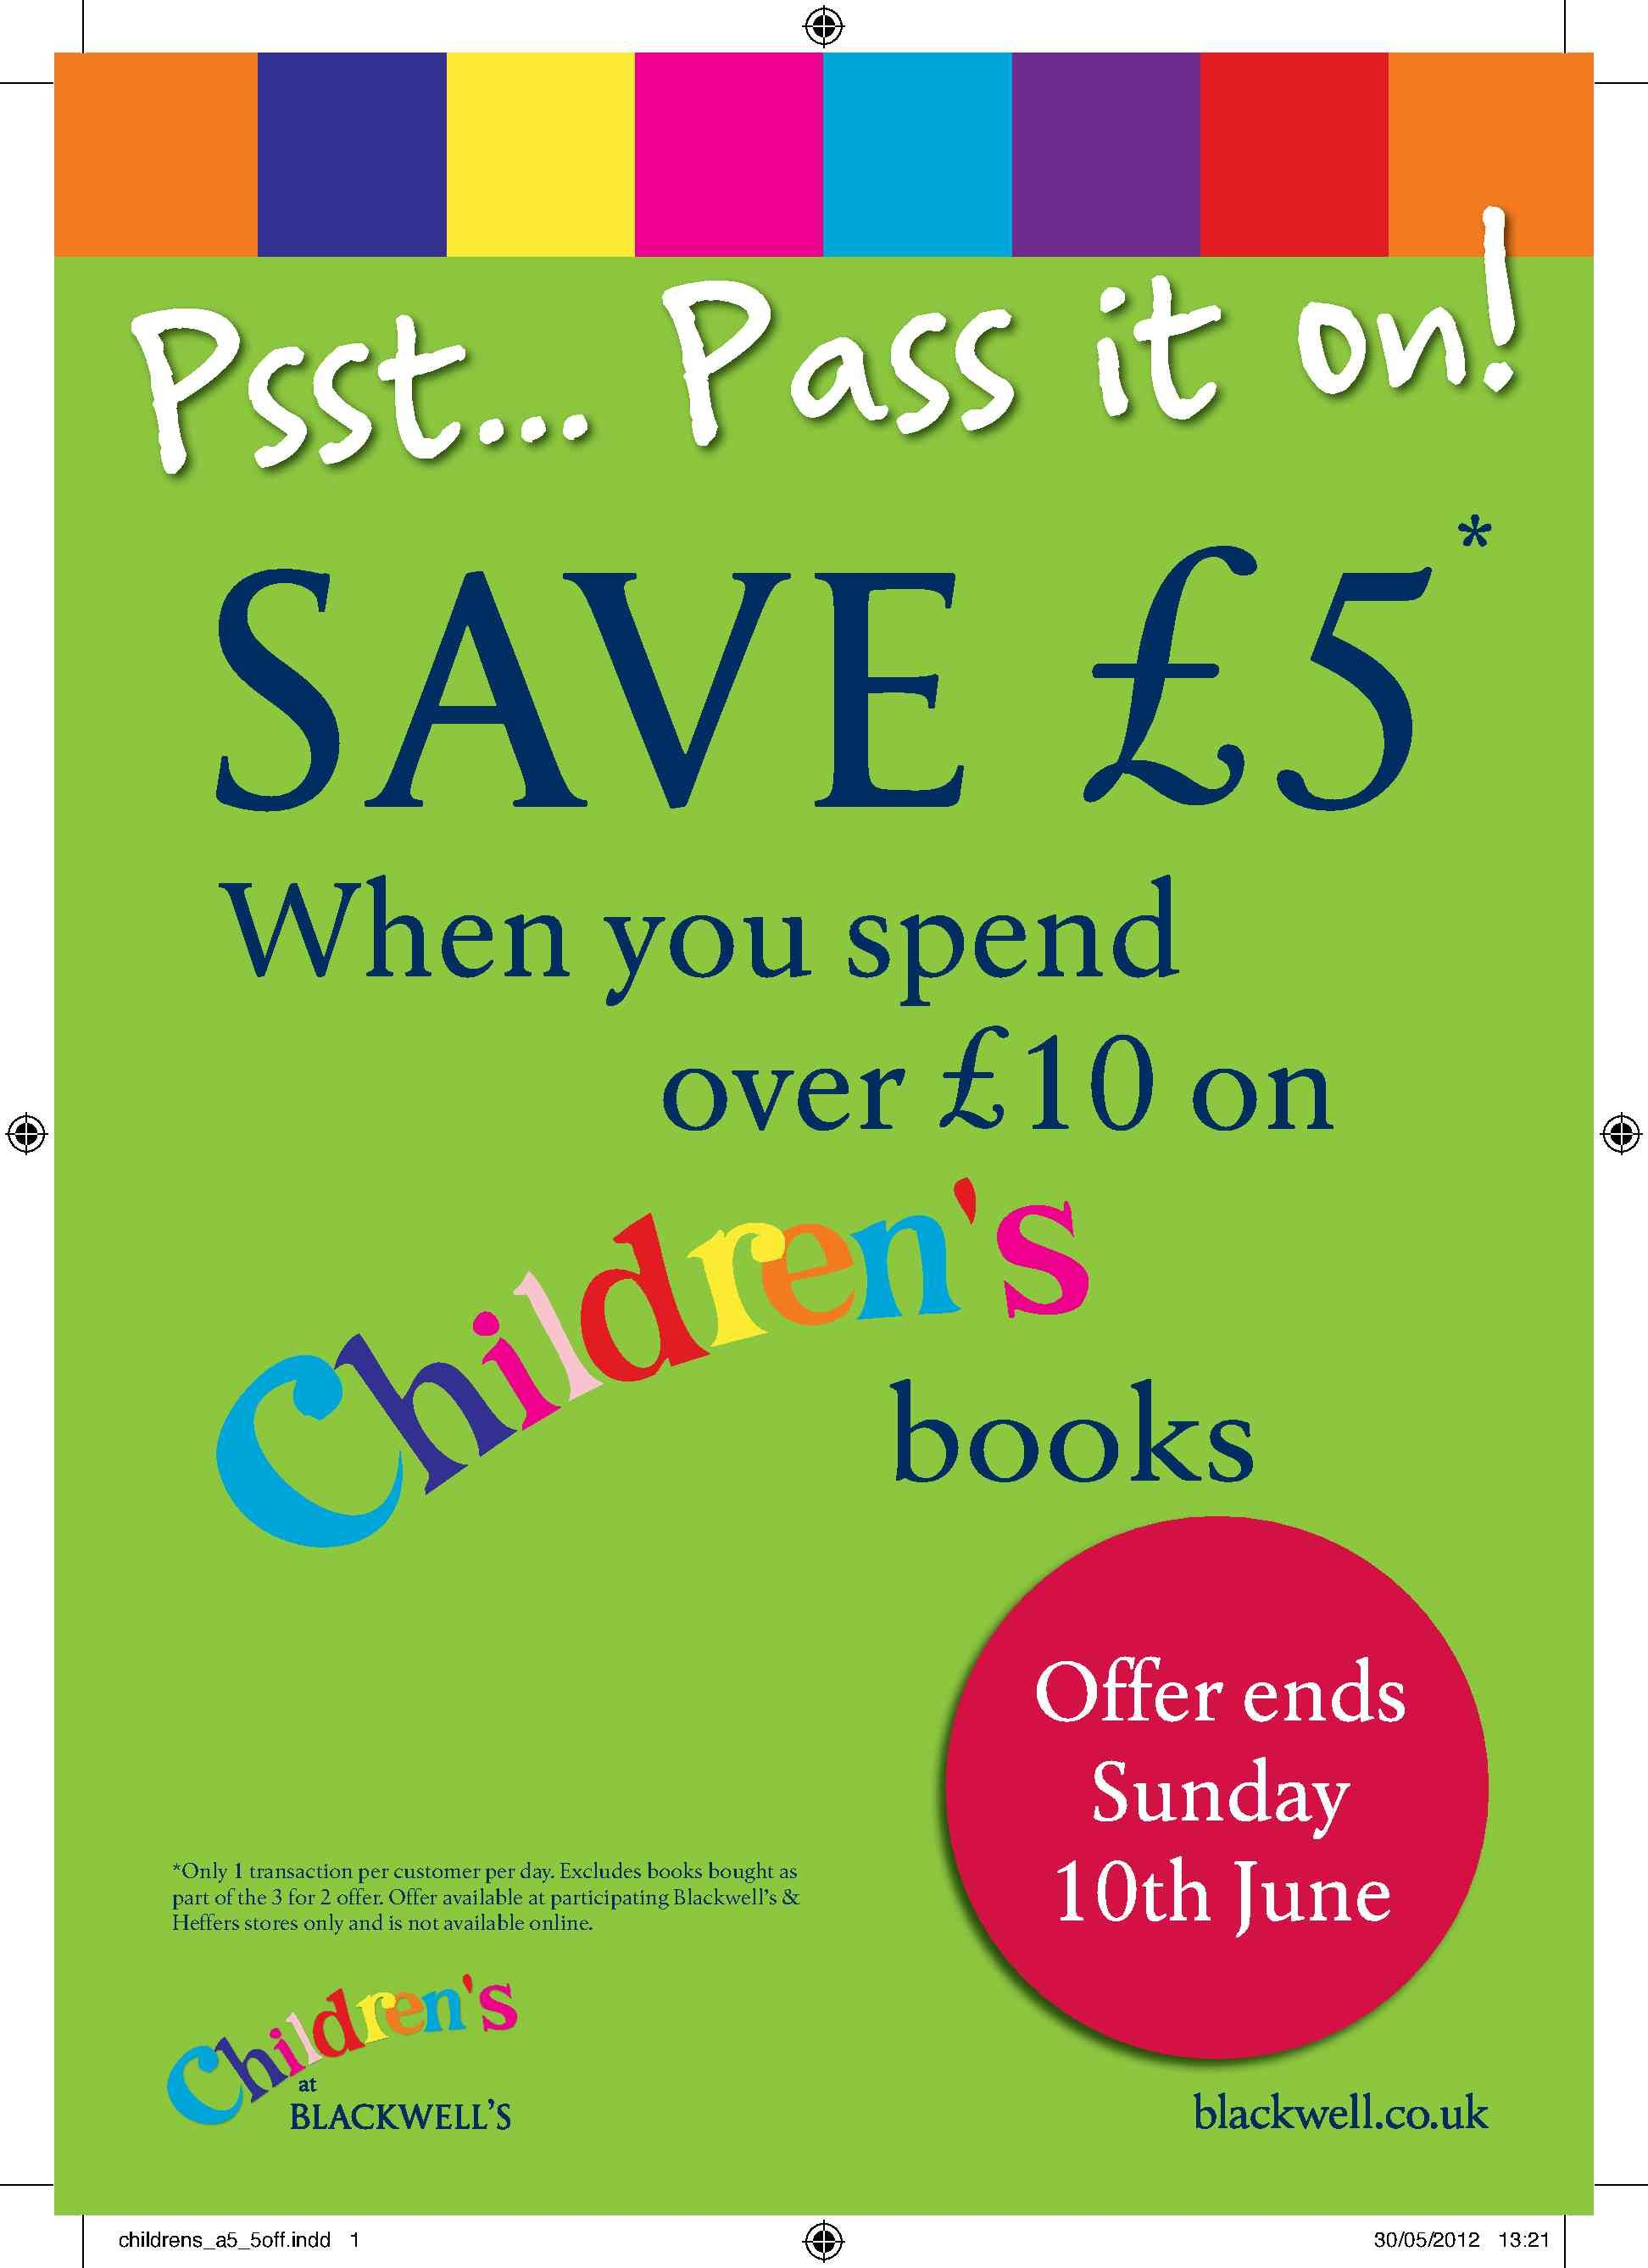 A great offer if you're in Cambridge!